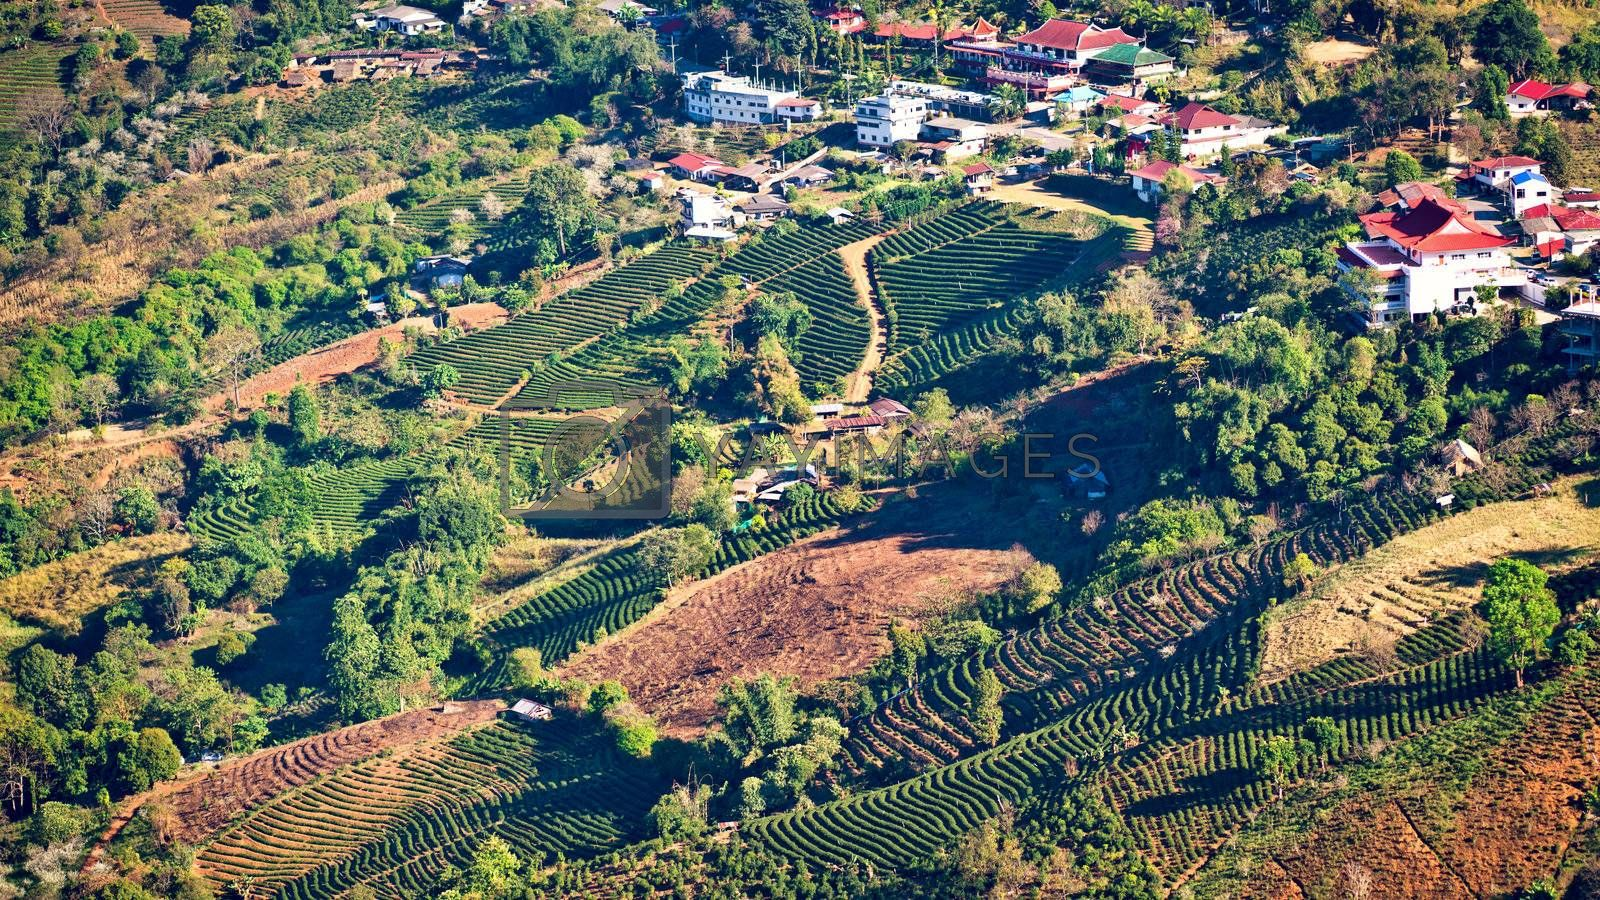 View of Mae Salong village with tea plantation, Chiang Mai province, Thailand